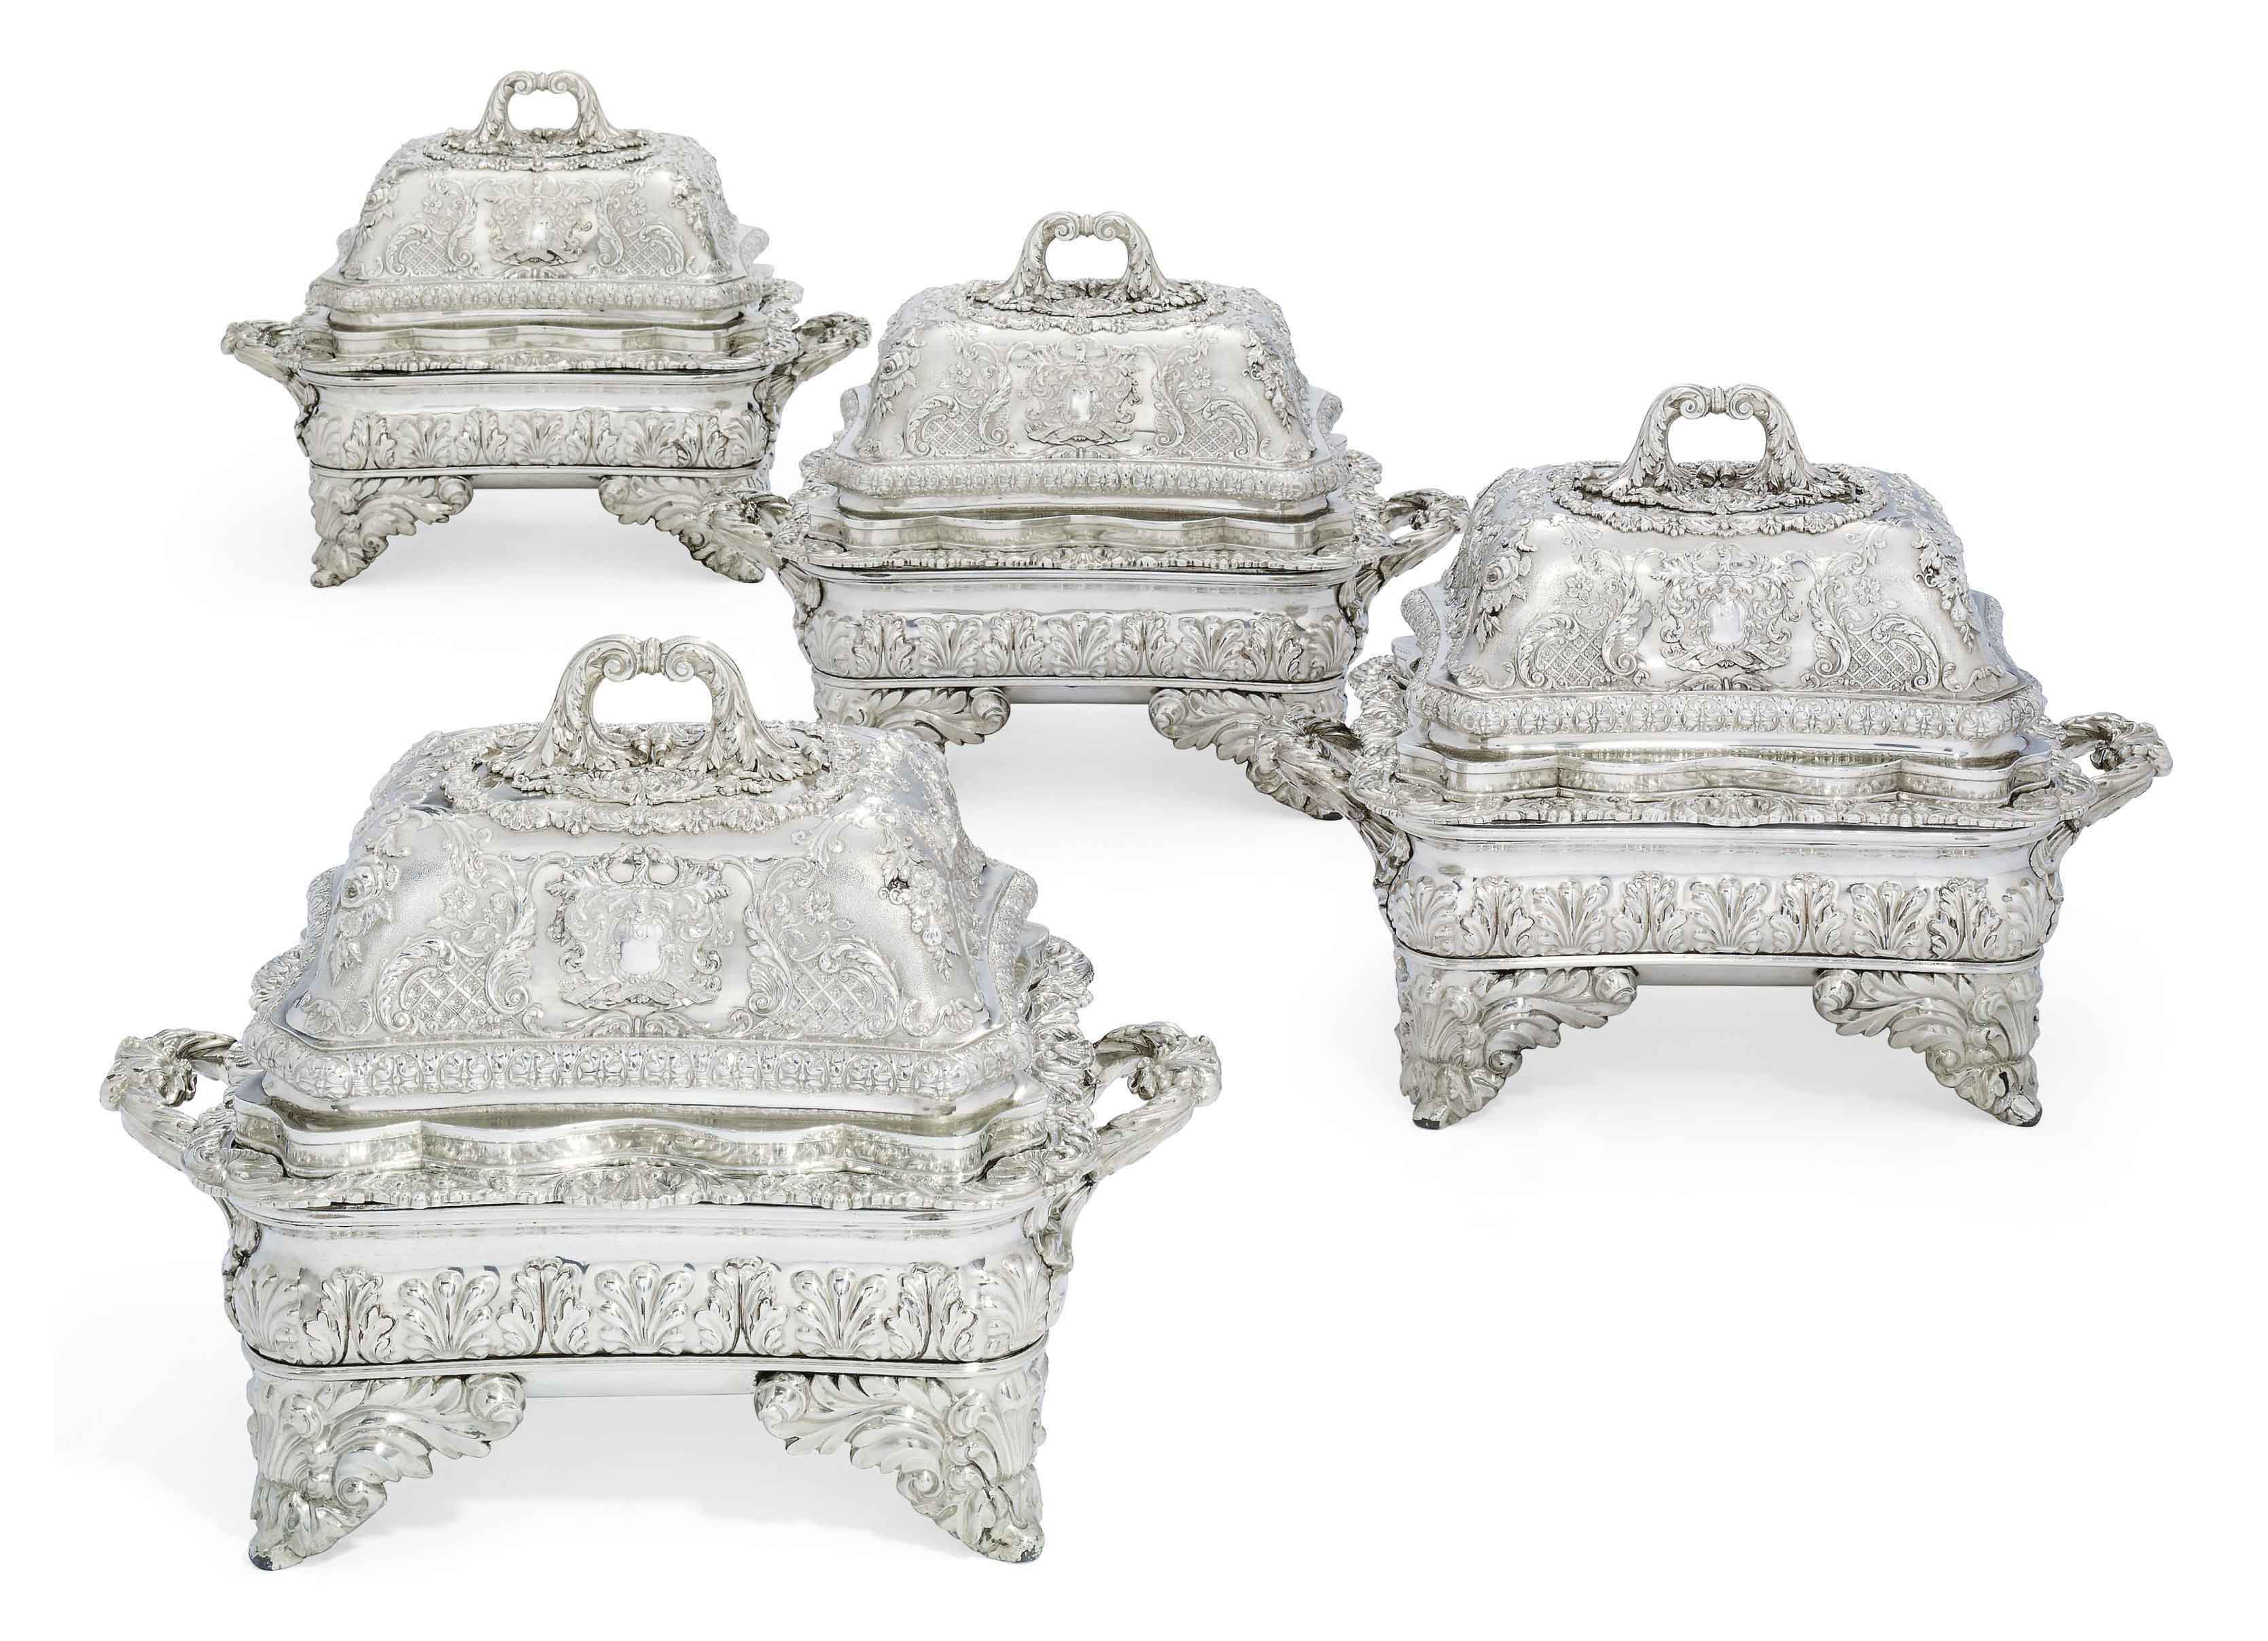 A SET OF FOUR GEORGE III SILVER ENTREE-DISHES, COVERS AND STANDS FROM THE SUTTON SERVICE